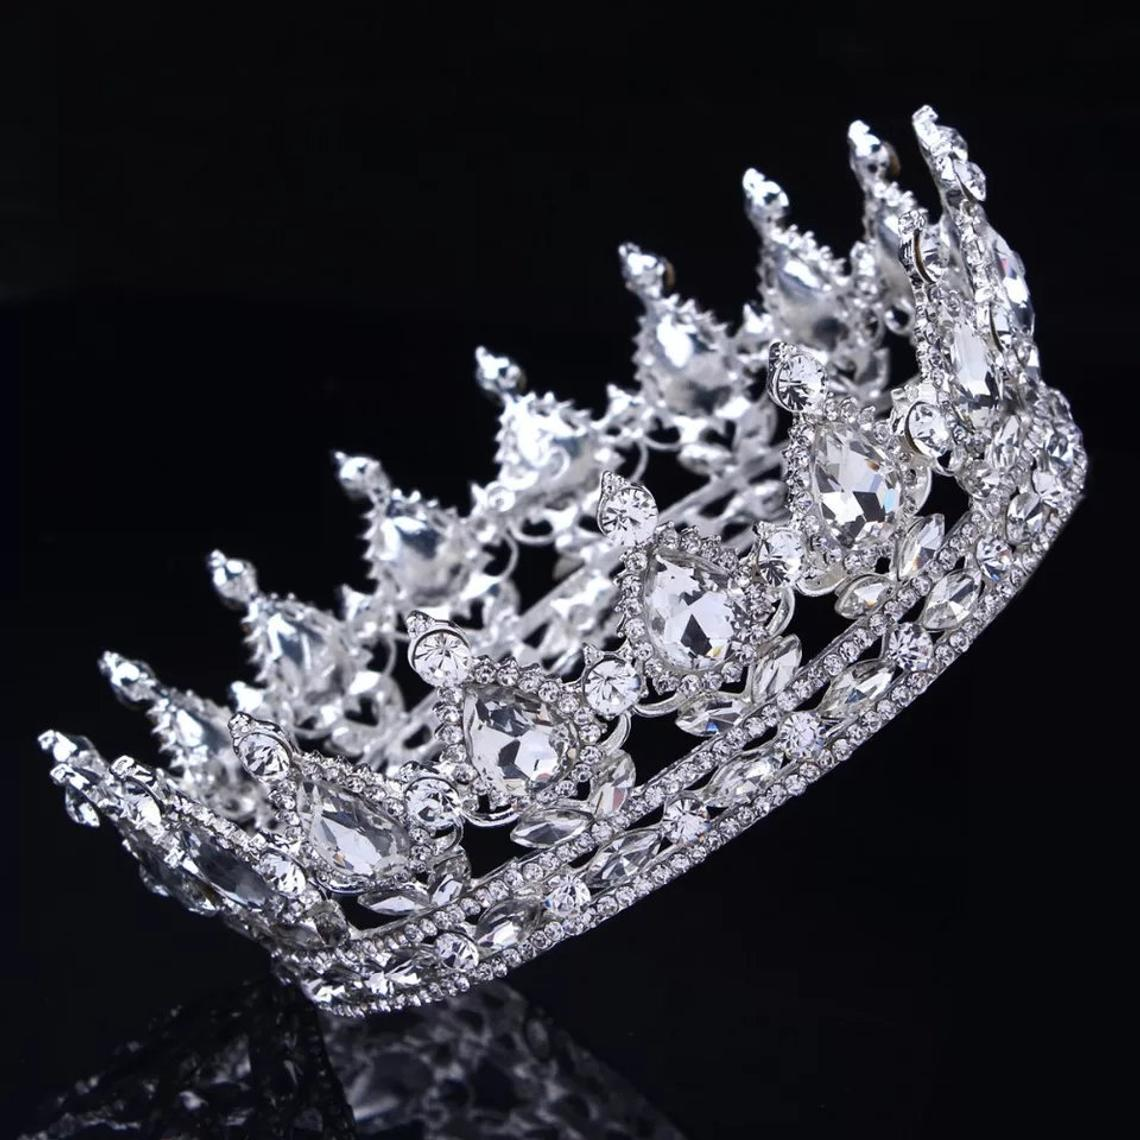 Best Tiara Bling Online: Floral Headband with Tiara Crystal and Diamonds